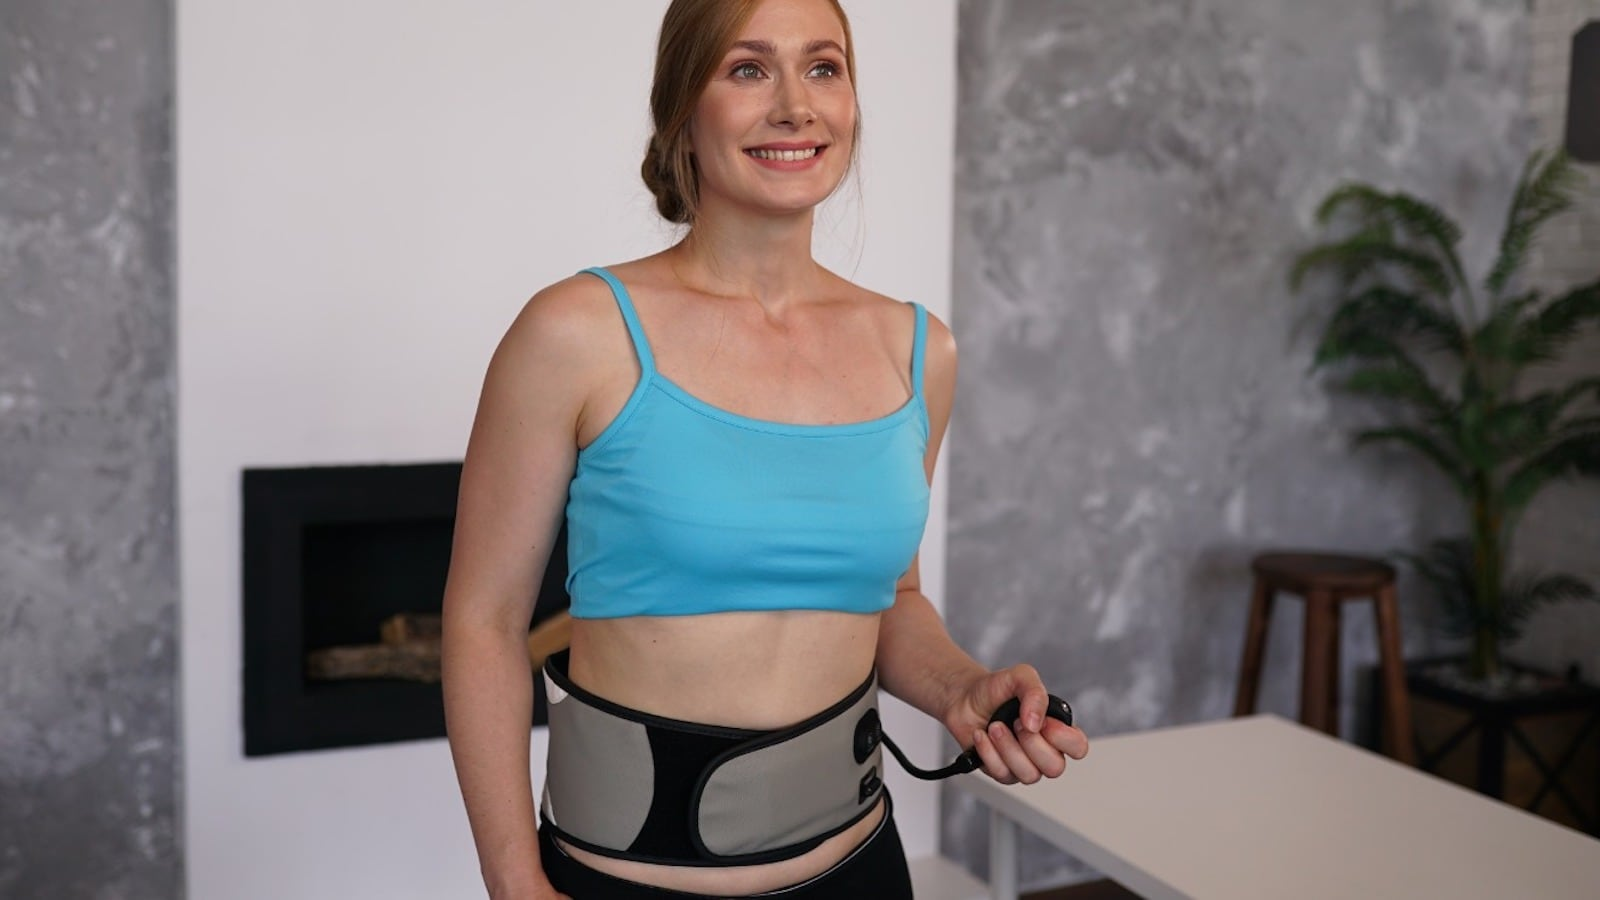 BackOSage decompression massage belt helps relieve your spinal pain